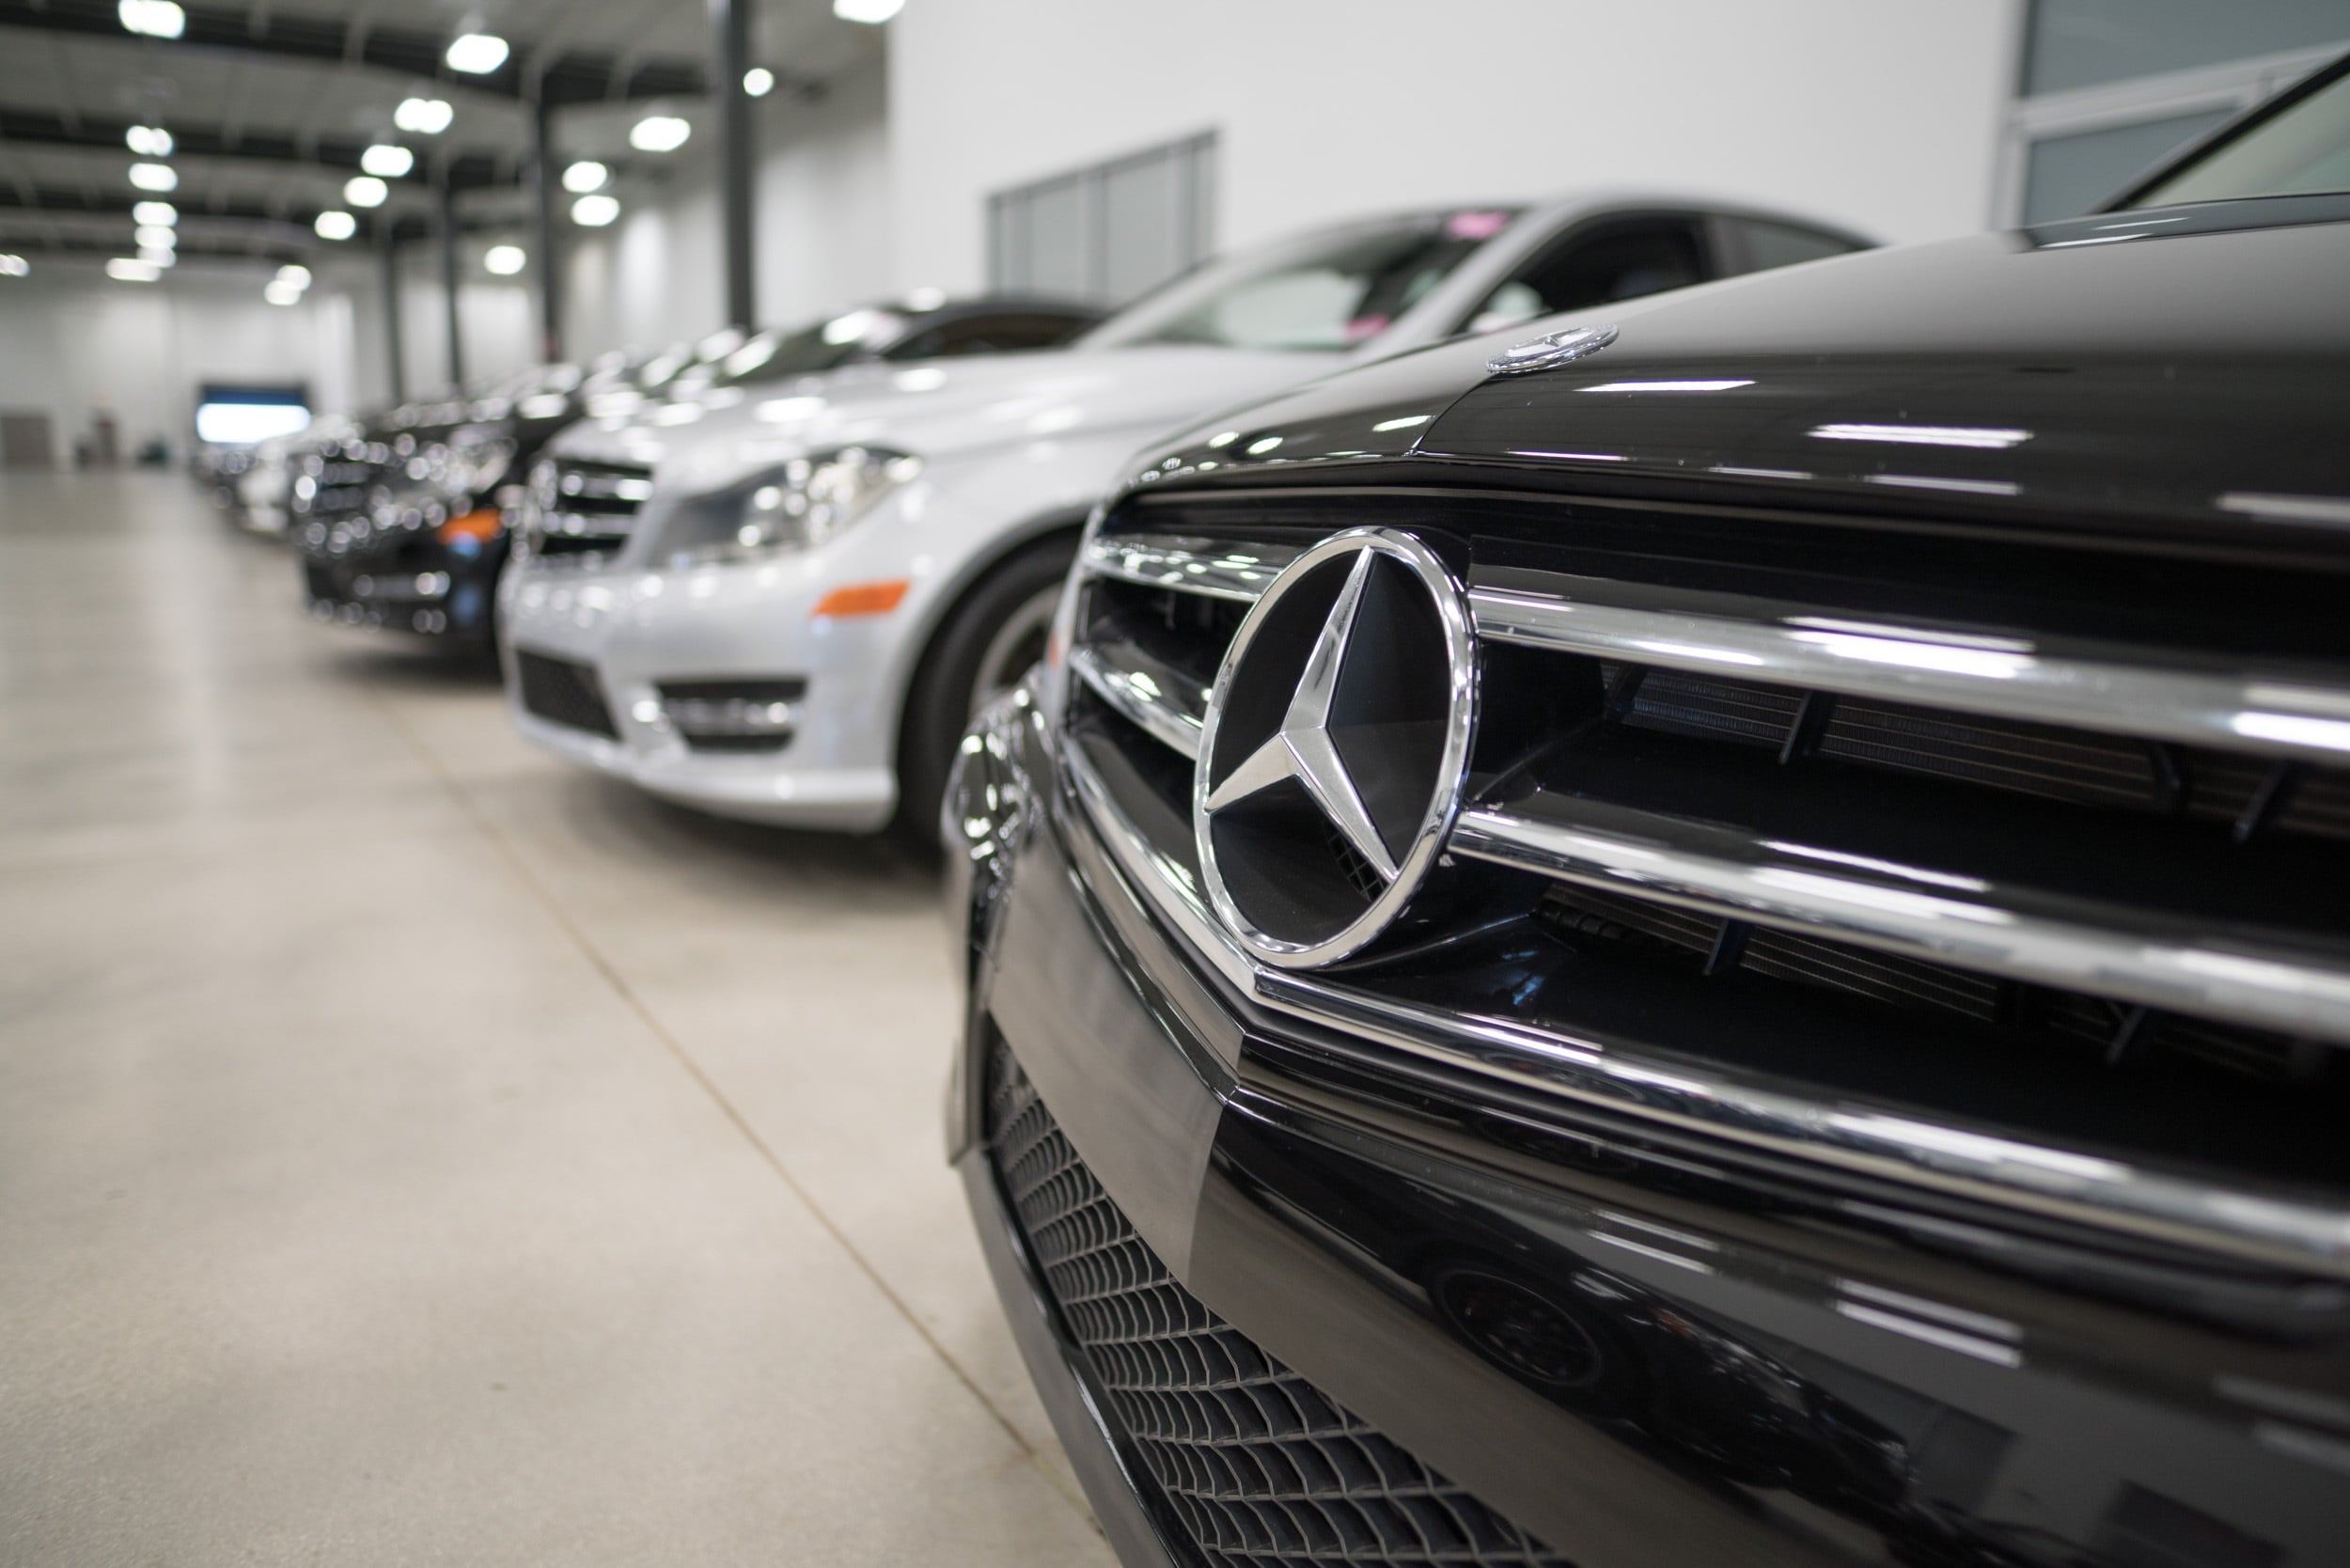 Mercedes benz dealer near me torrance ca mercedes benz for Mercedes benz repair torrance ca